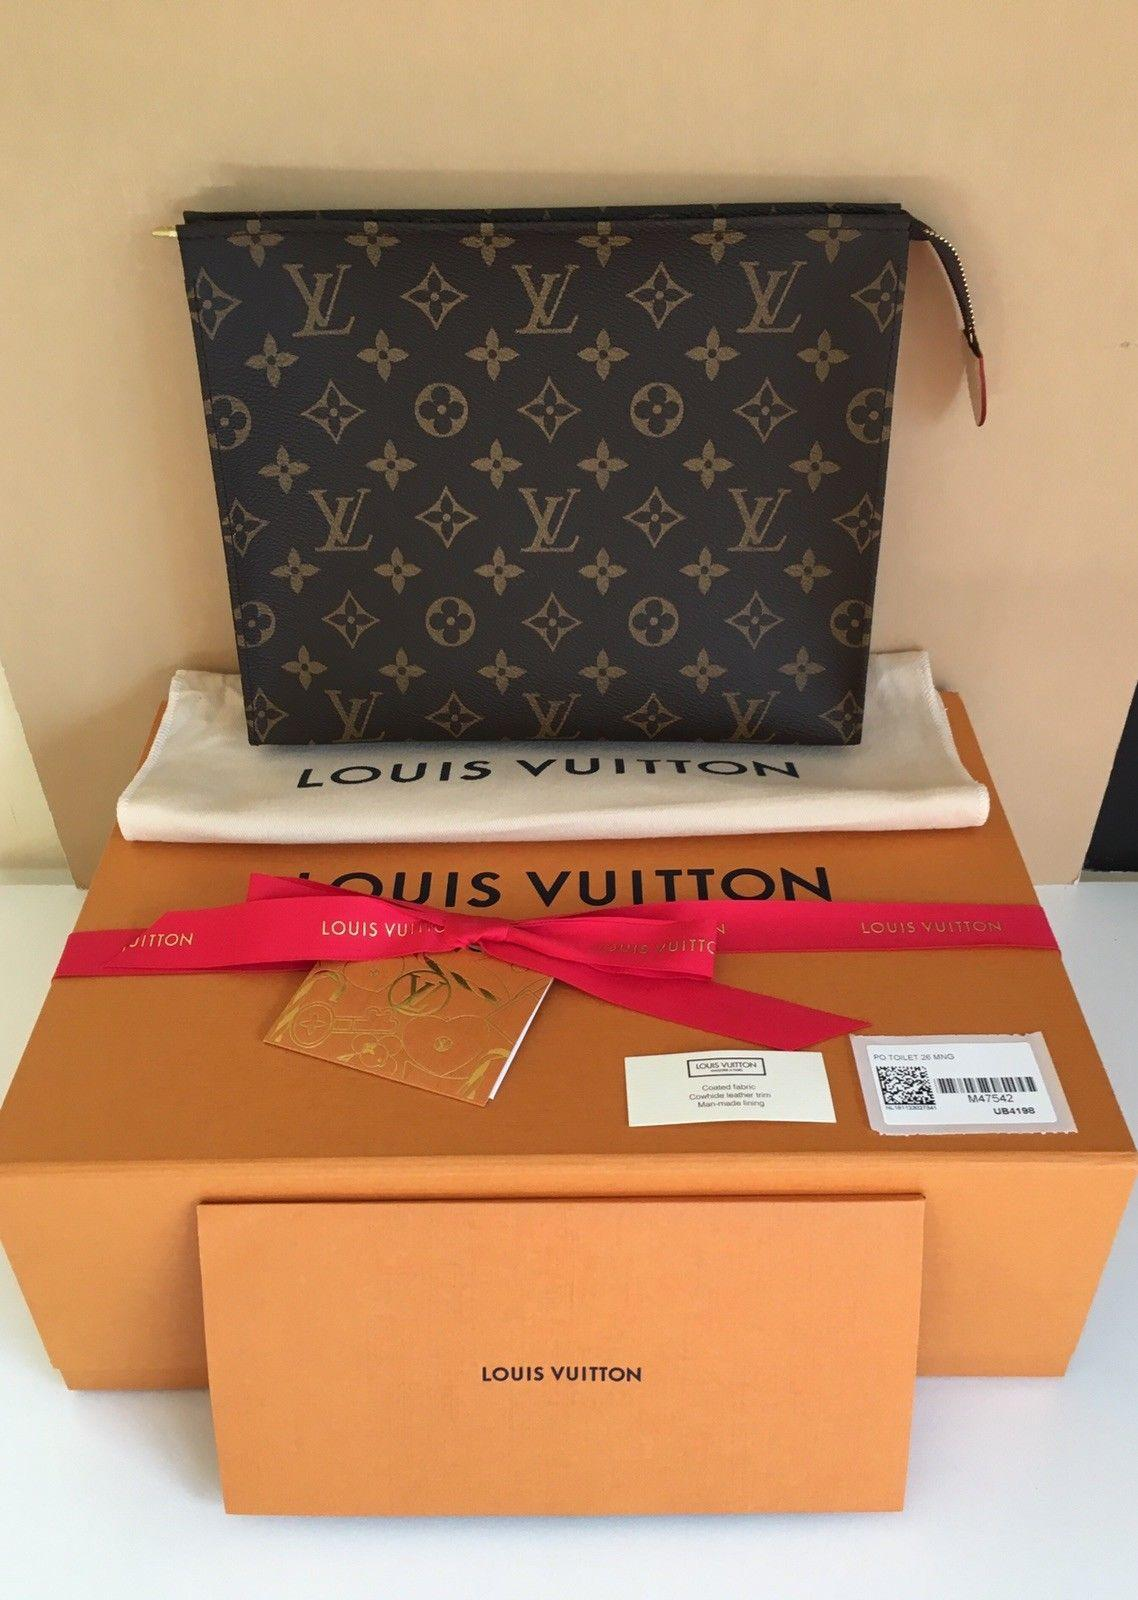 Louis Vuitton Toiletry Pouch 26 Monogram Cosmetic Bag & 2 Parfums lv purse bags